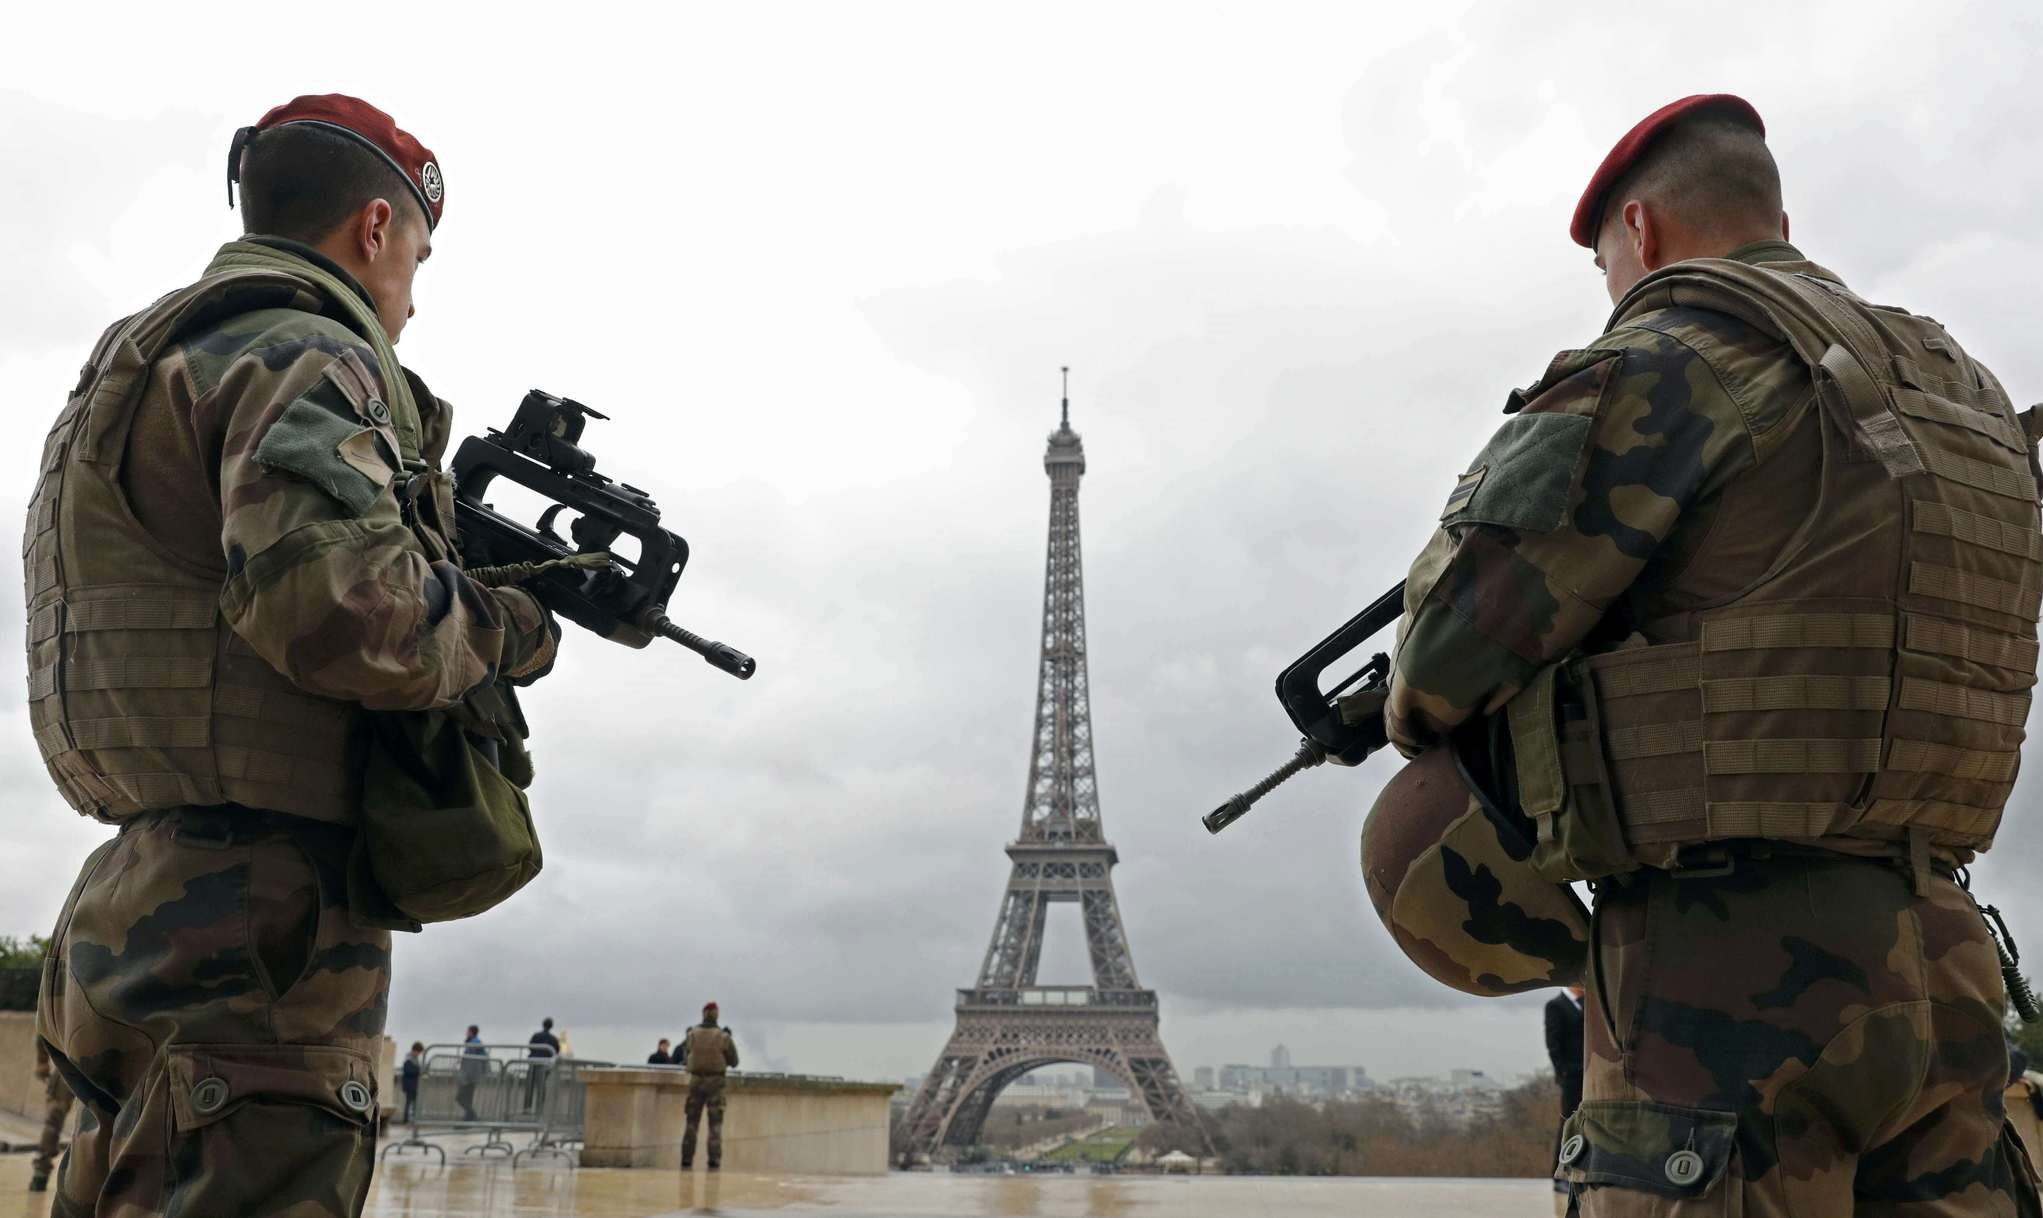 French army paratroopers patrol near the Eiffel tower in Paris, France, March 30, 2016 (Reuters Photo)